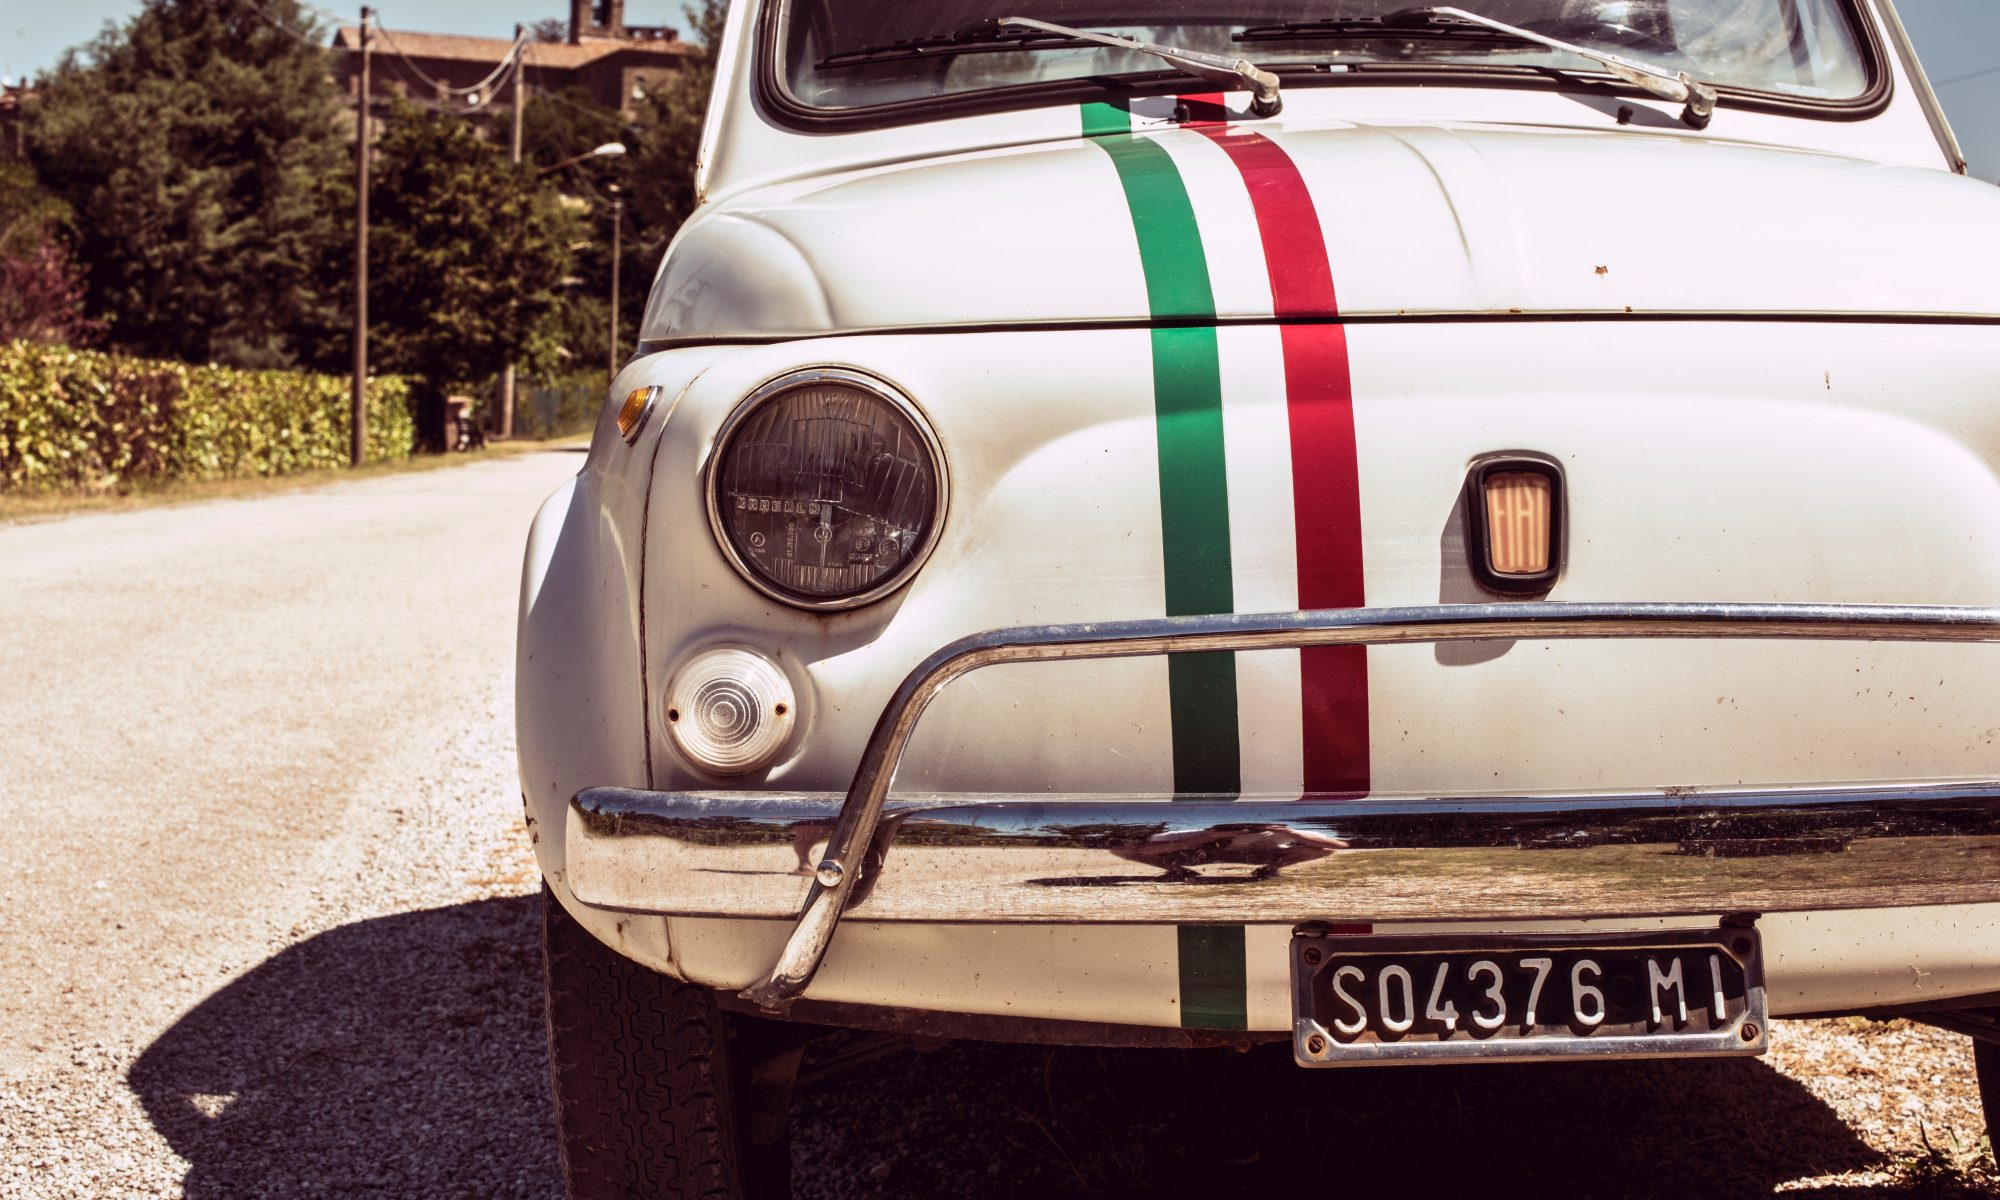 FIAT 500 white car with Italian striping on hood